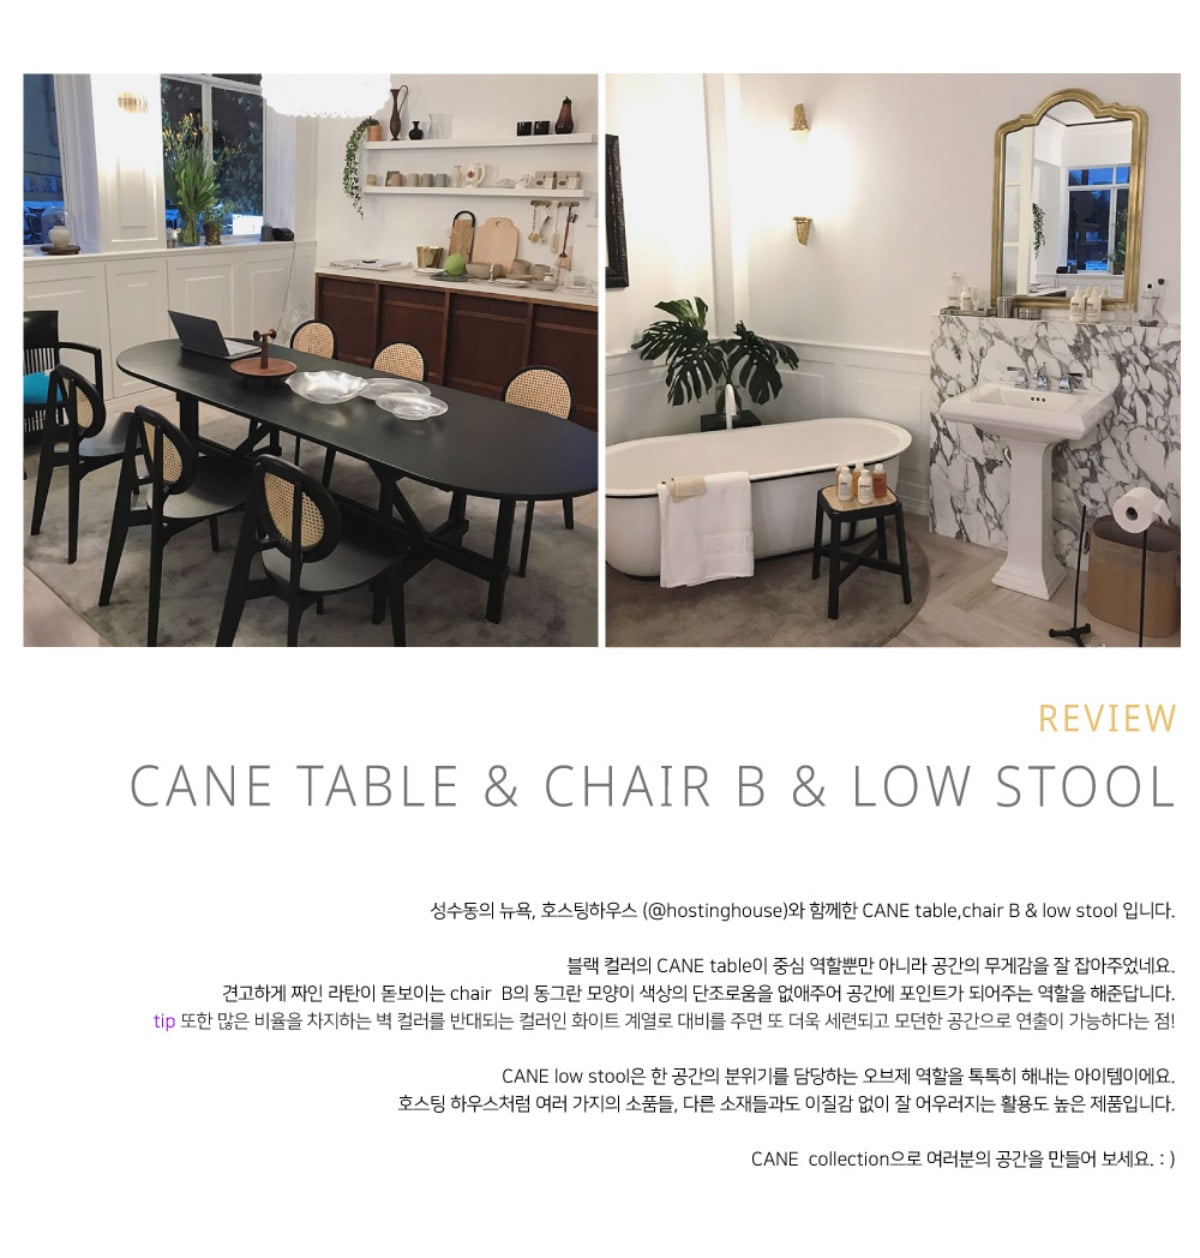 CANE table & chair B & low stool